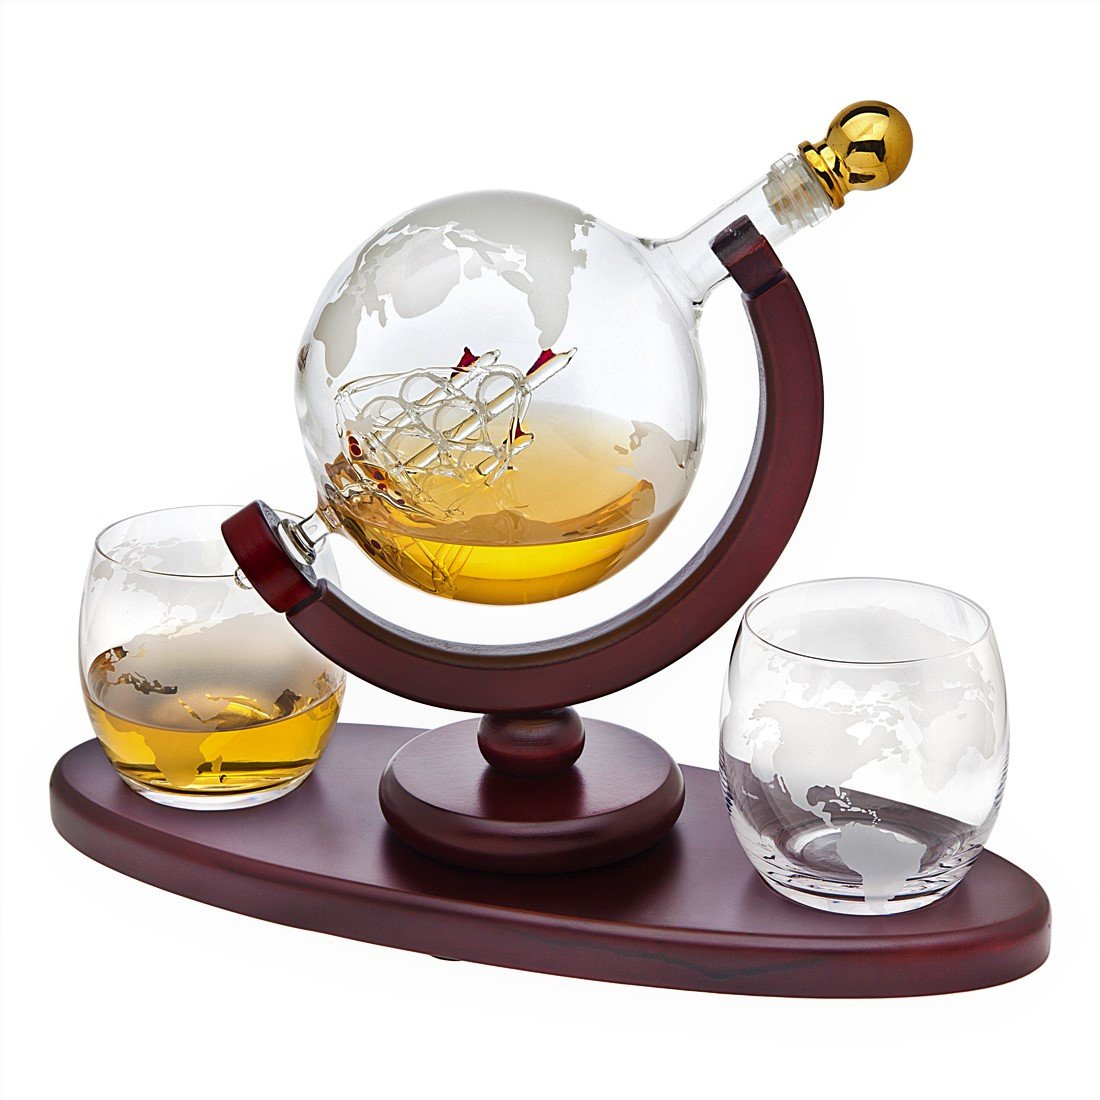 Whiskey Decanter Globe Set with 2 Etched Globe Whisky Glasses - for Liquor, Scotch, Bourbon, Vodka - 850ml